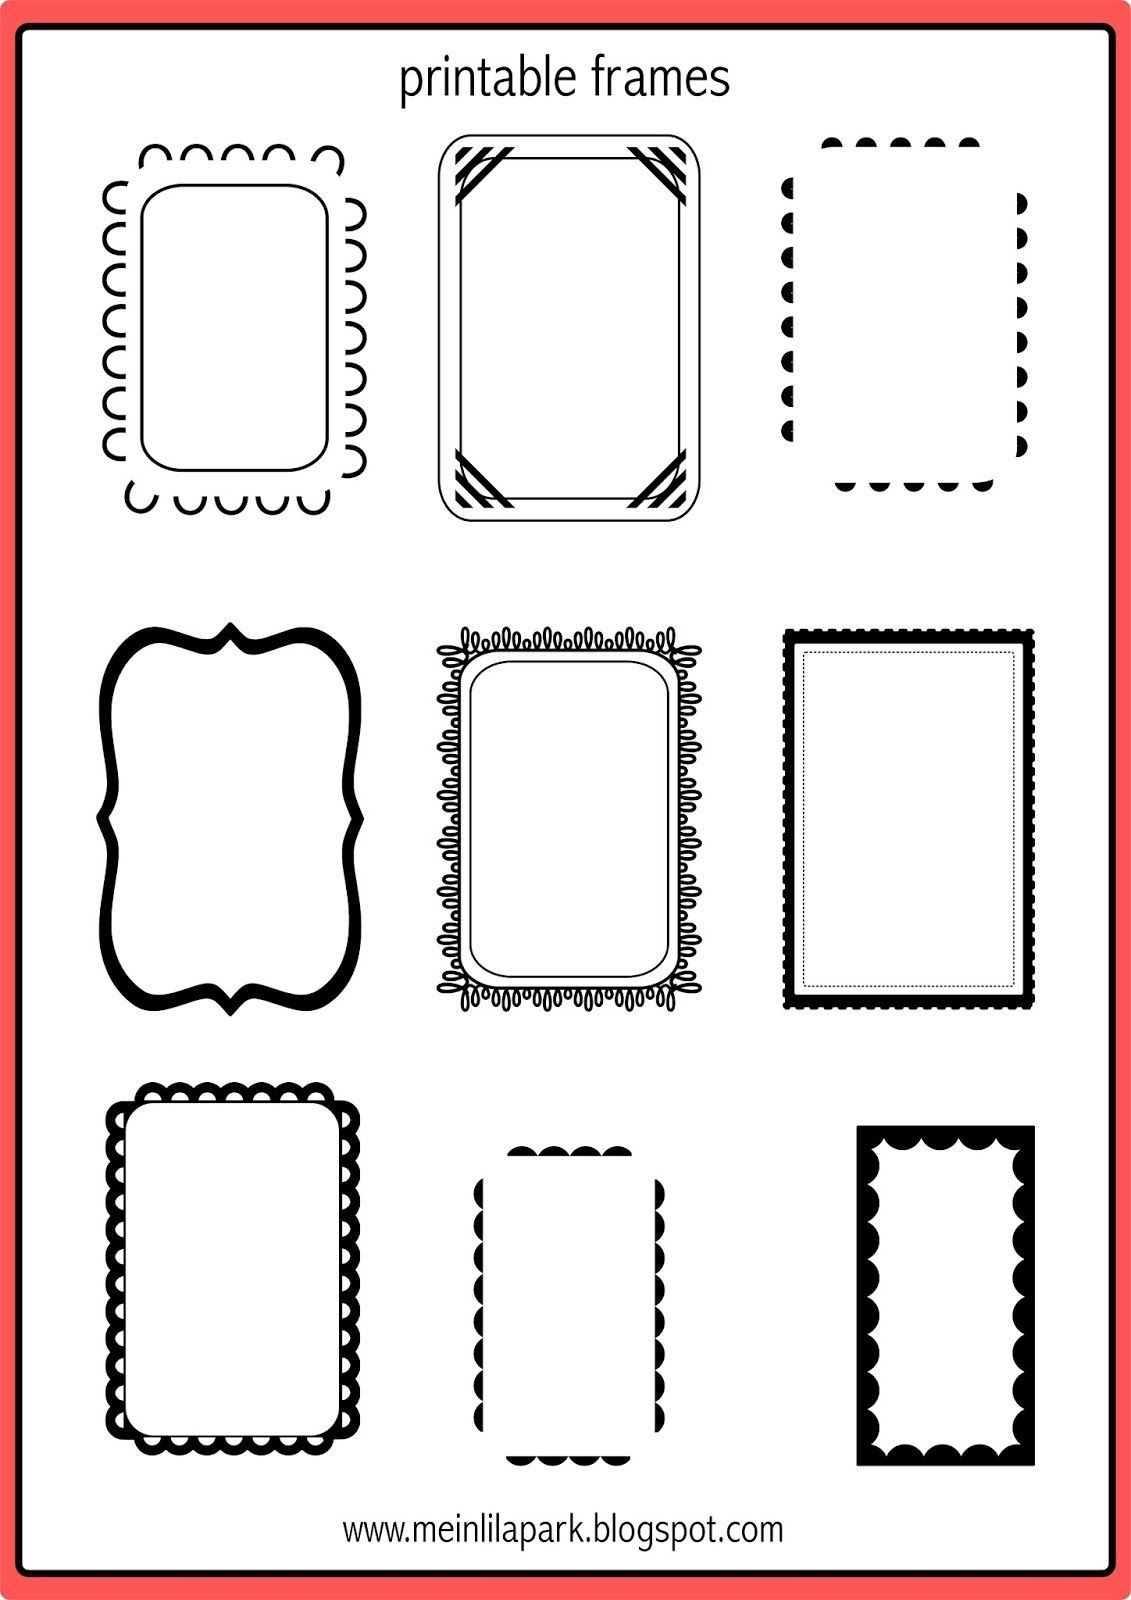 photograph relating to Free Printable Picture Frames titled Absolutely free Printable Frames For Sbooking Free of charge Printable